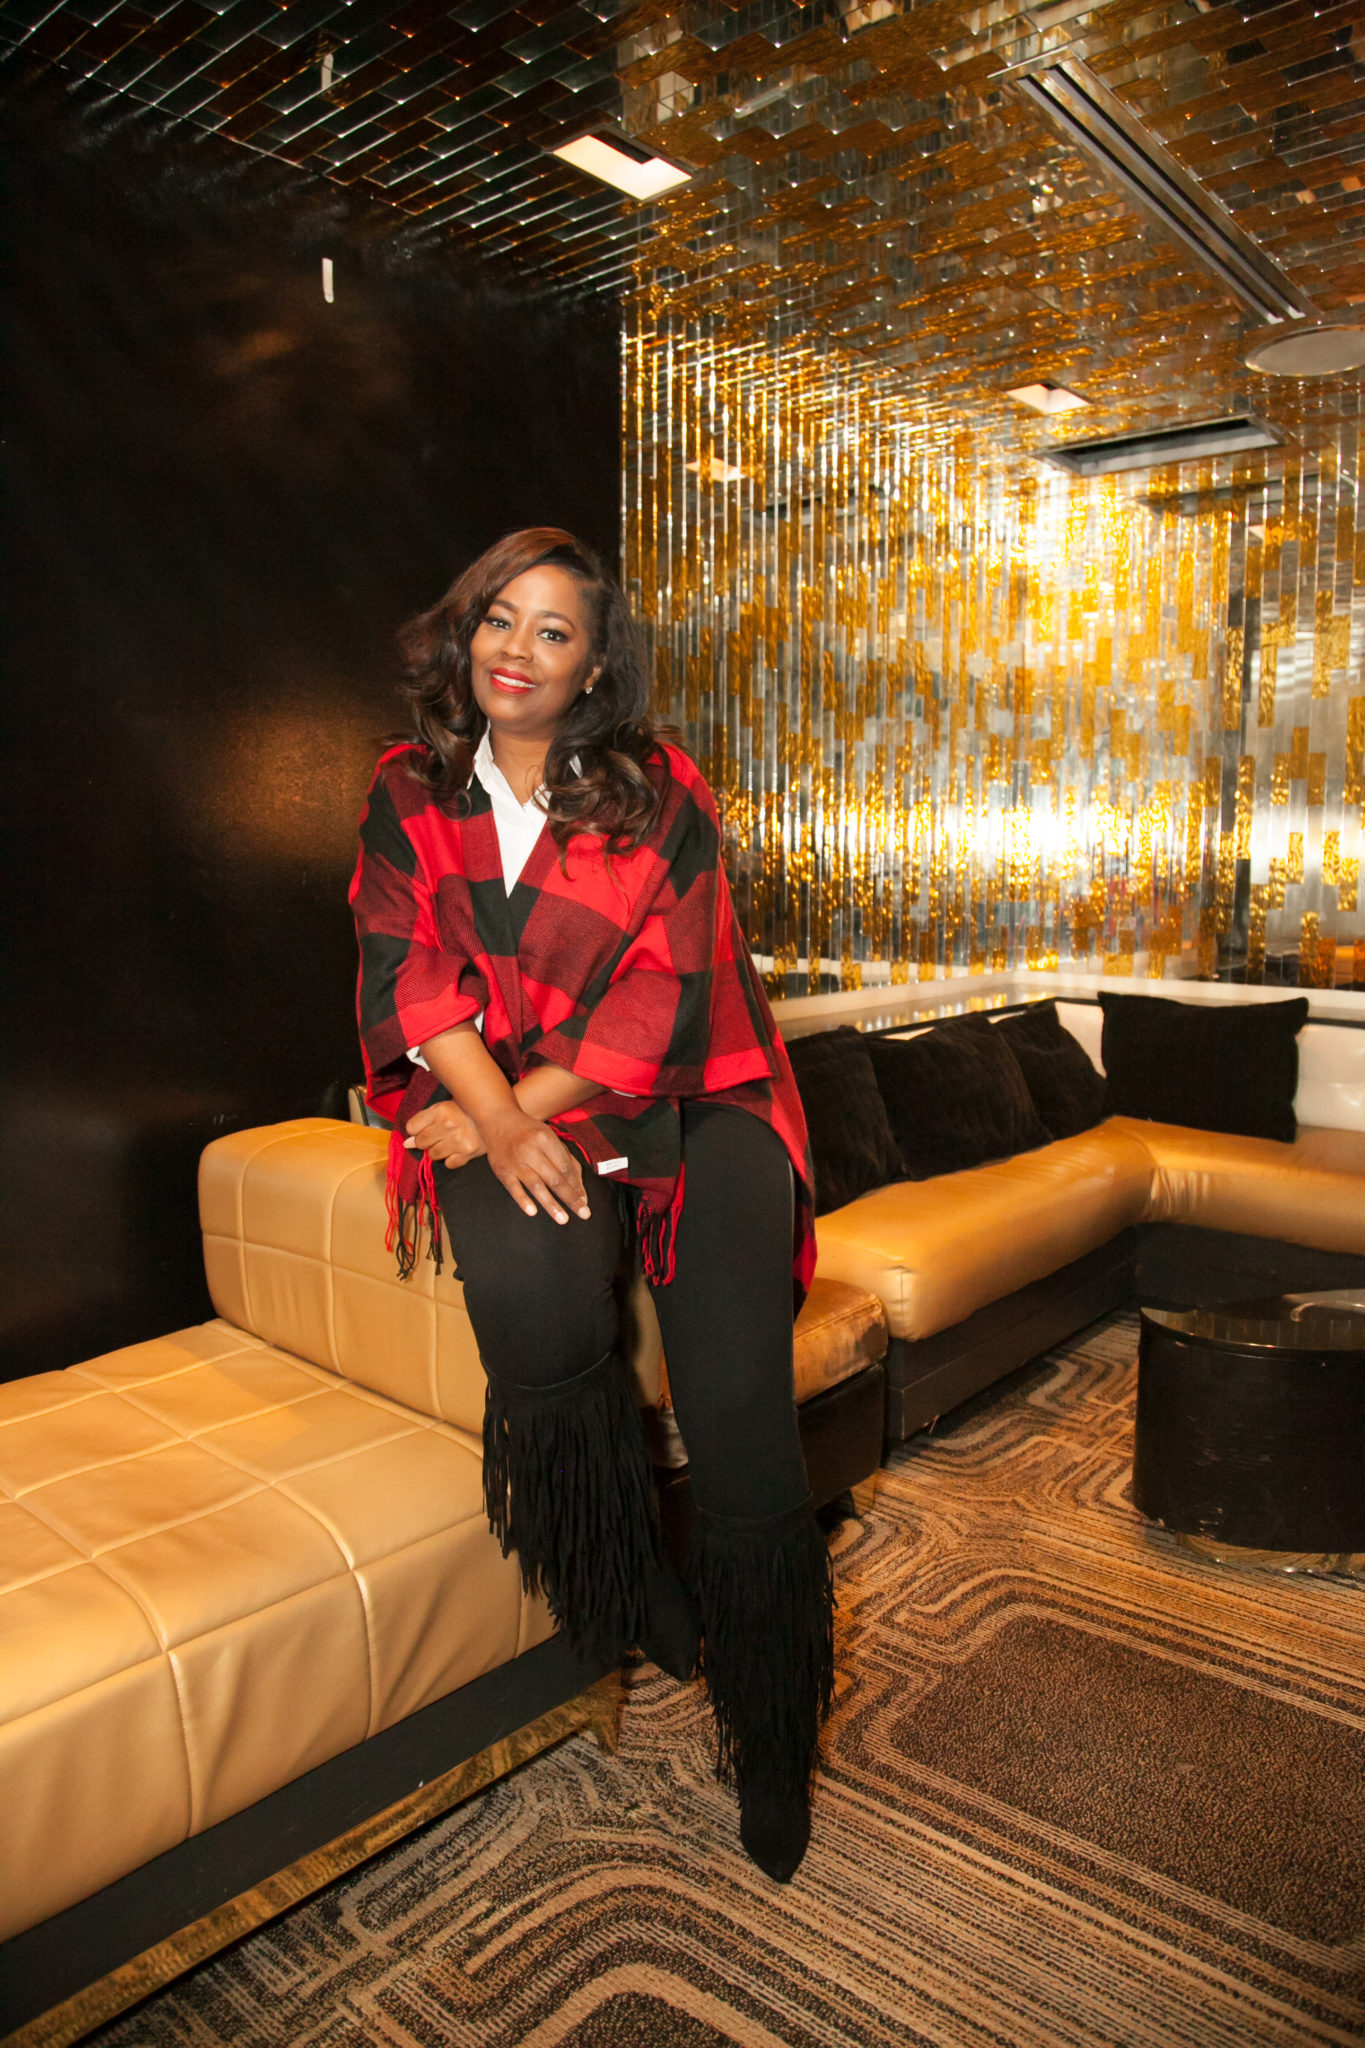 Being Mary Jane Season 4 Viewing Party In Atlanta